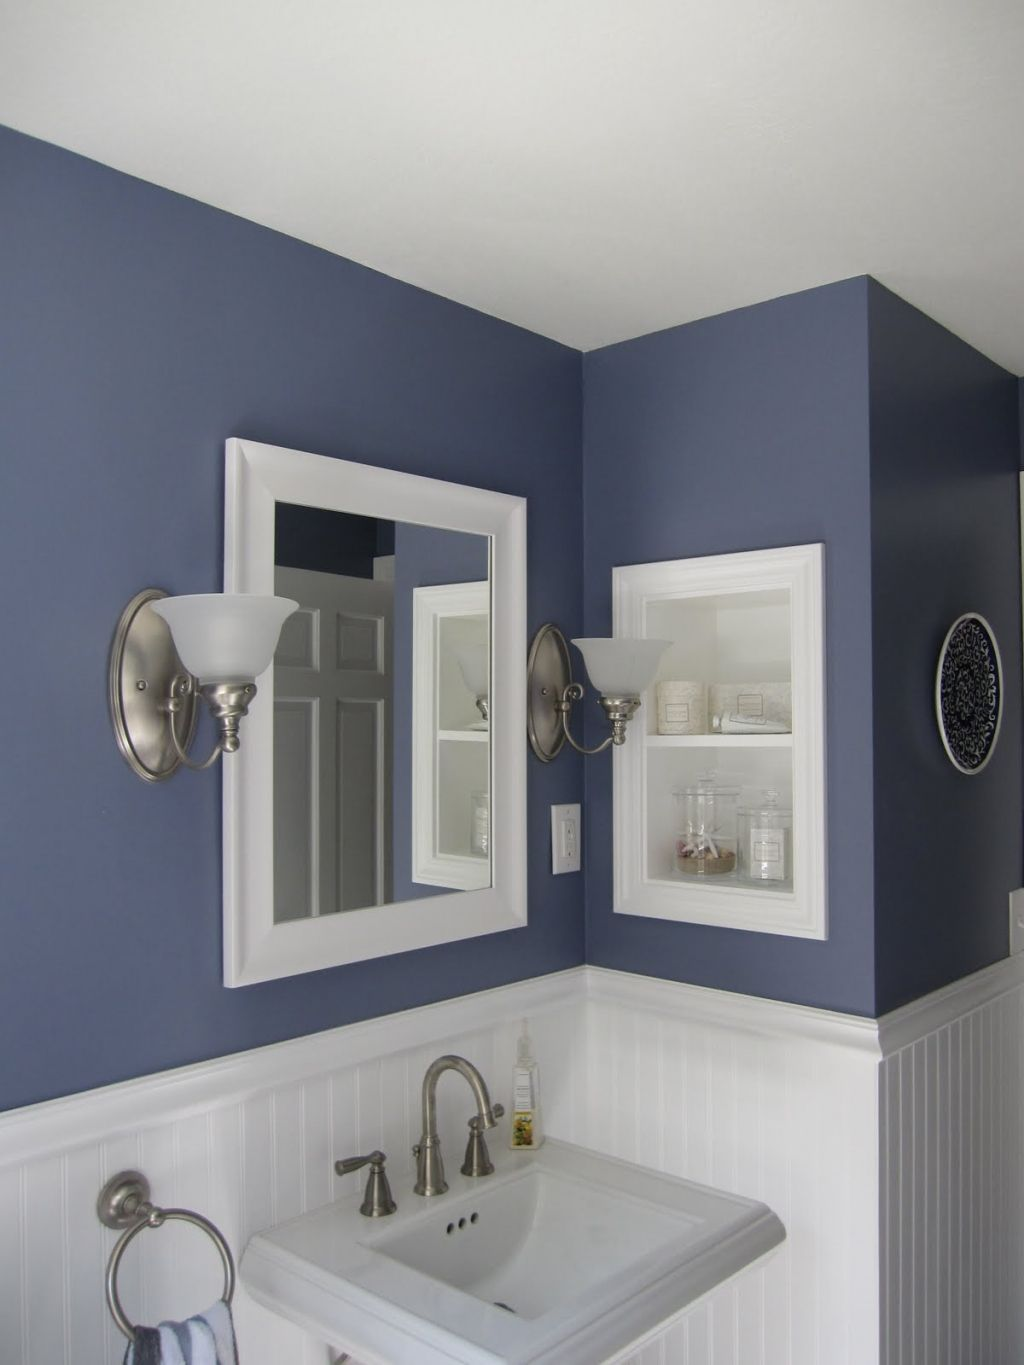 Half bathroom ideas gray - Half Bath Decorating Ideas Bathroom Decorating Ideas 2 Pictures Of 6 Awesome Half Bathroom